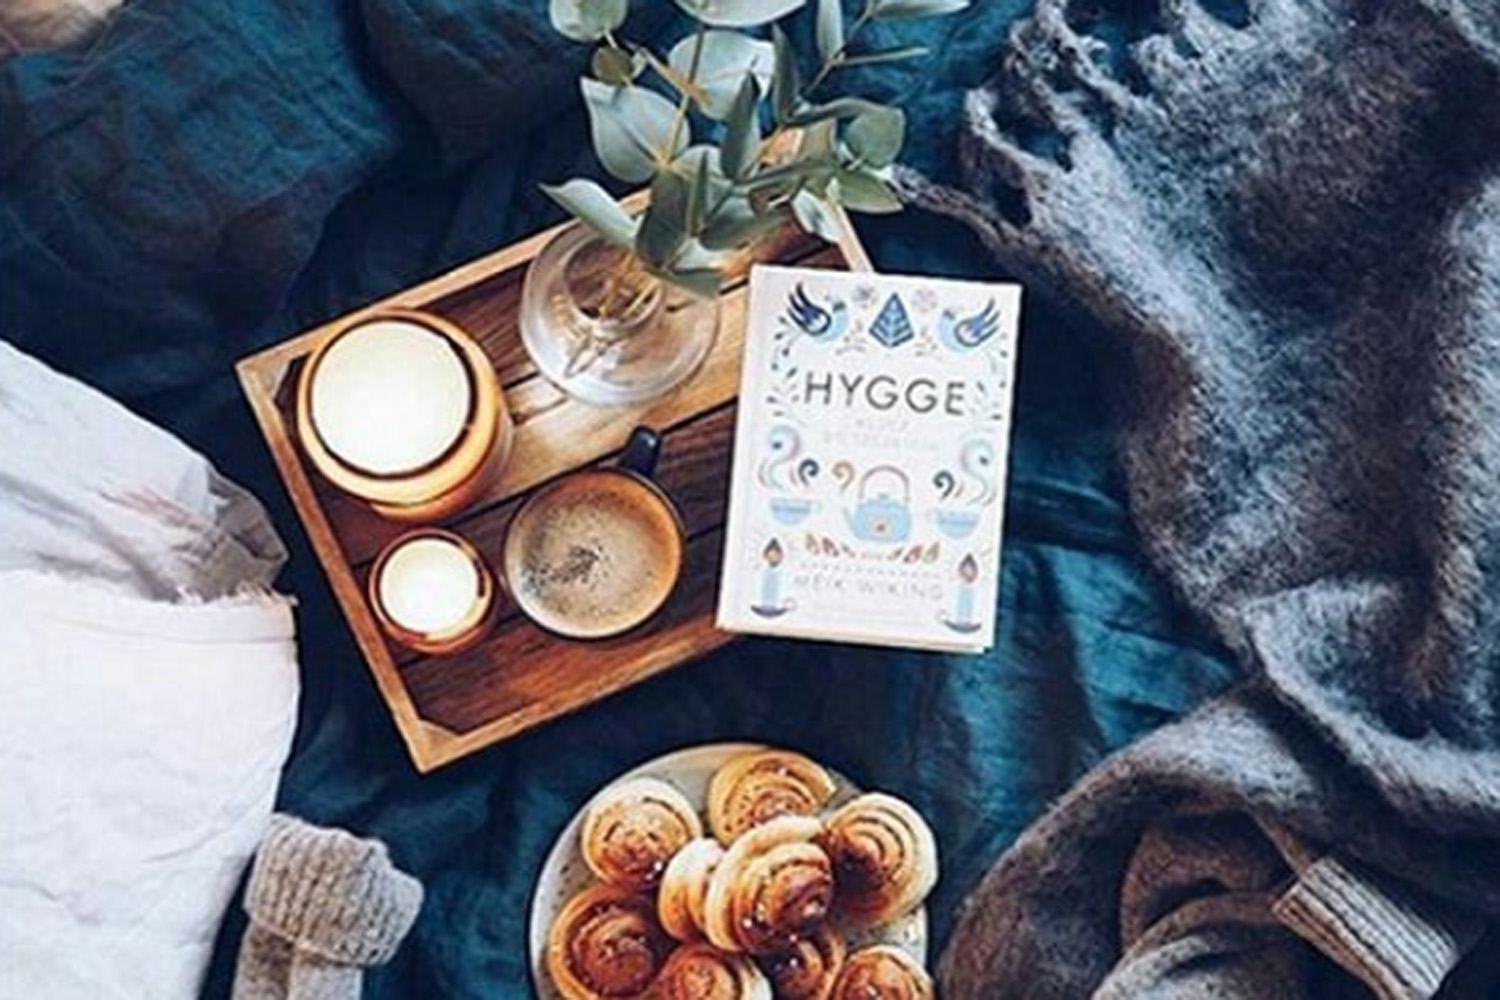 Life Styled: 30 Ways to Hygge Image via WBUR